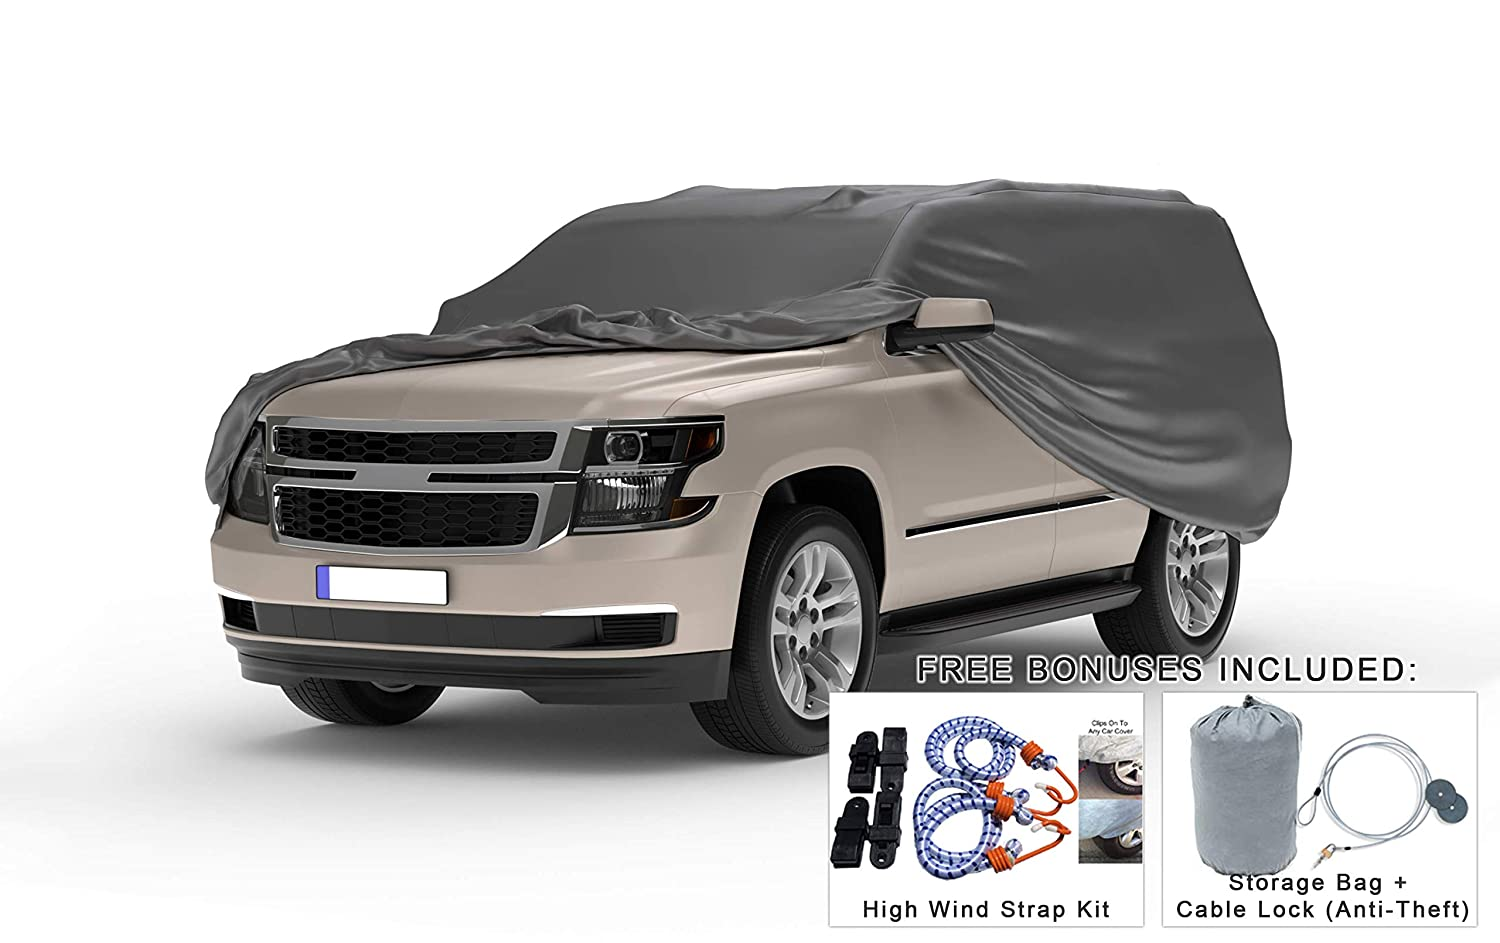 Snow Protect from Rain Weatherproof Truck Cover Compatible with 1947-1955 Chevrolet Advance Design Regular Cab /& Camper Shell Theft Cable Lock Sun Hail Bag /& Wind Straps 5L Outdoor /& Indoor